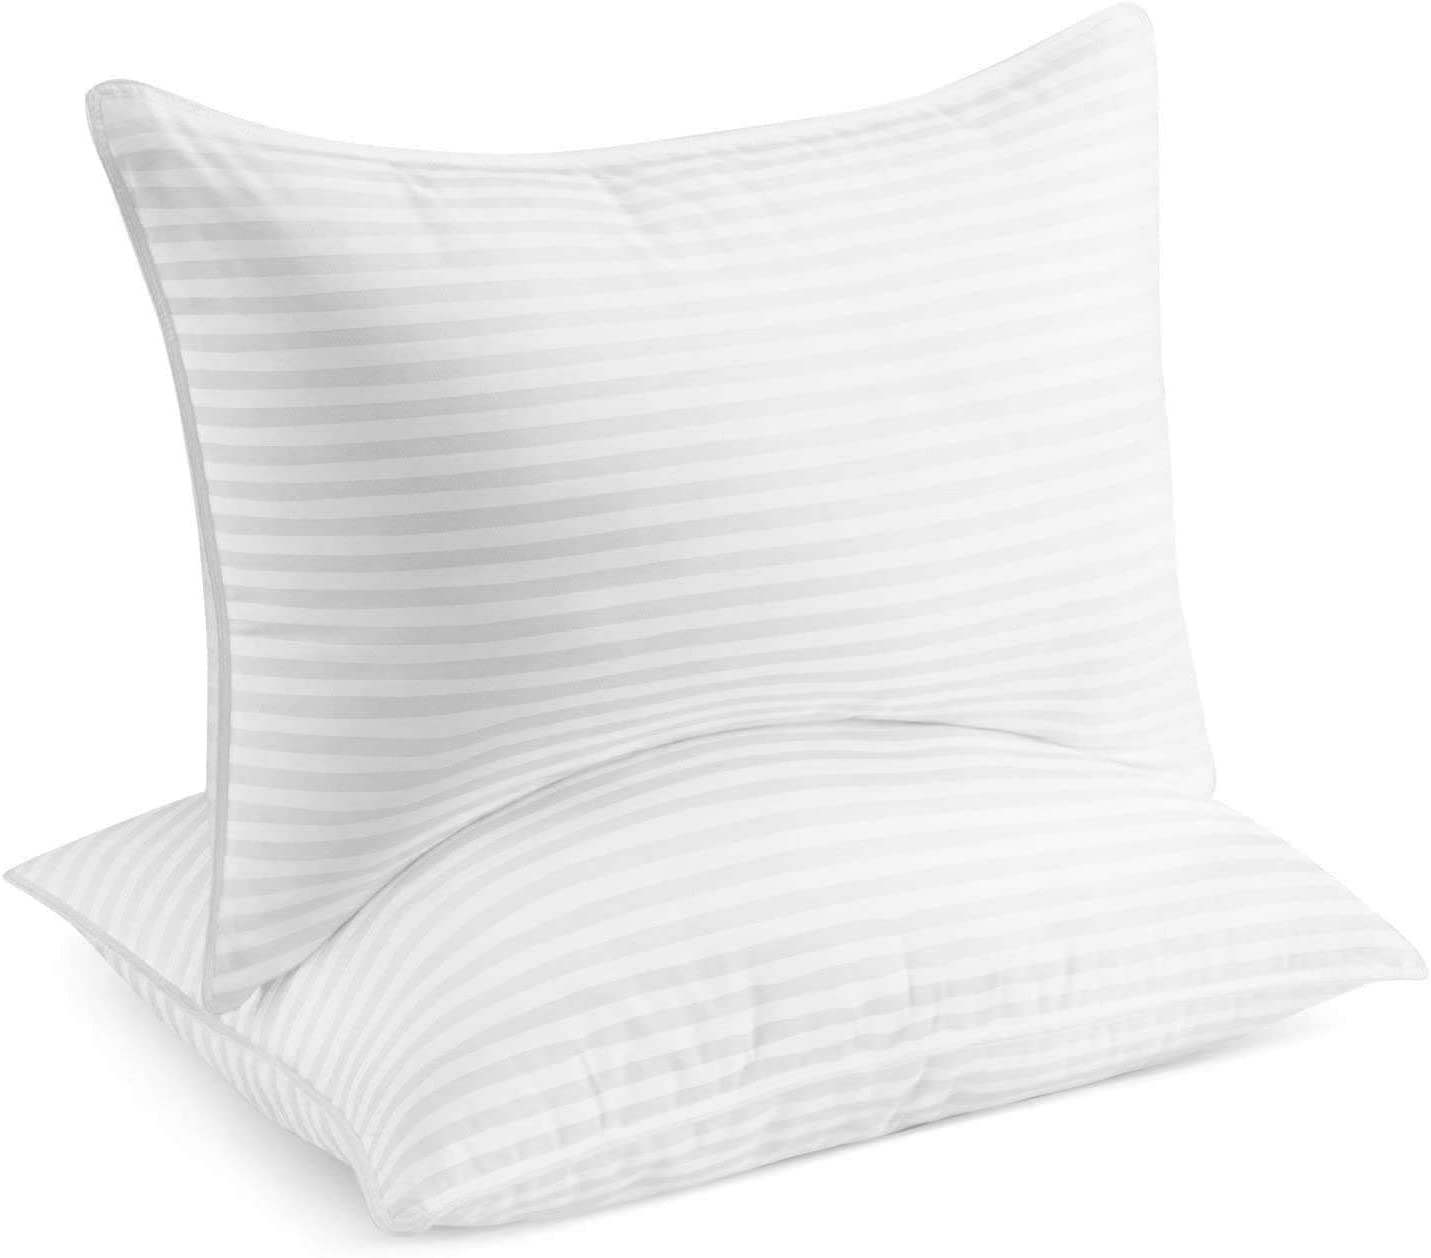 Beckham Hotel Collection Gel Pillow (2-Pack) - Luxury Plush Gel Pillow - Dust Mite Resistant & Hypoallergenic - Queen: Home & Kitchen